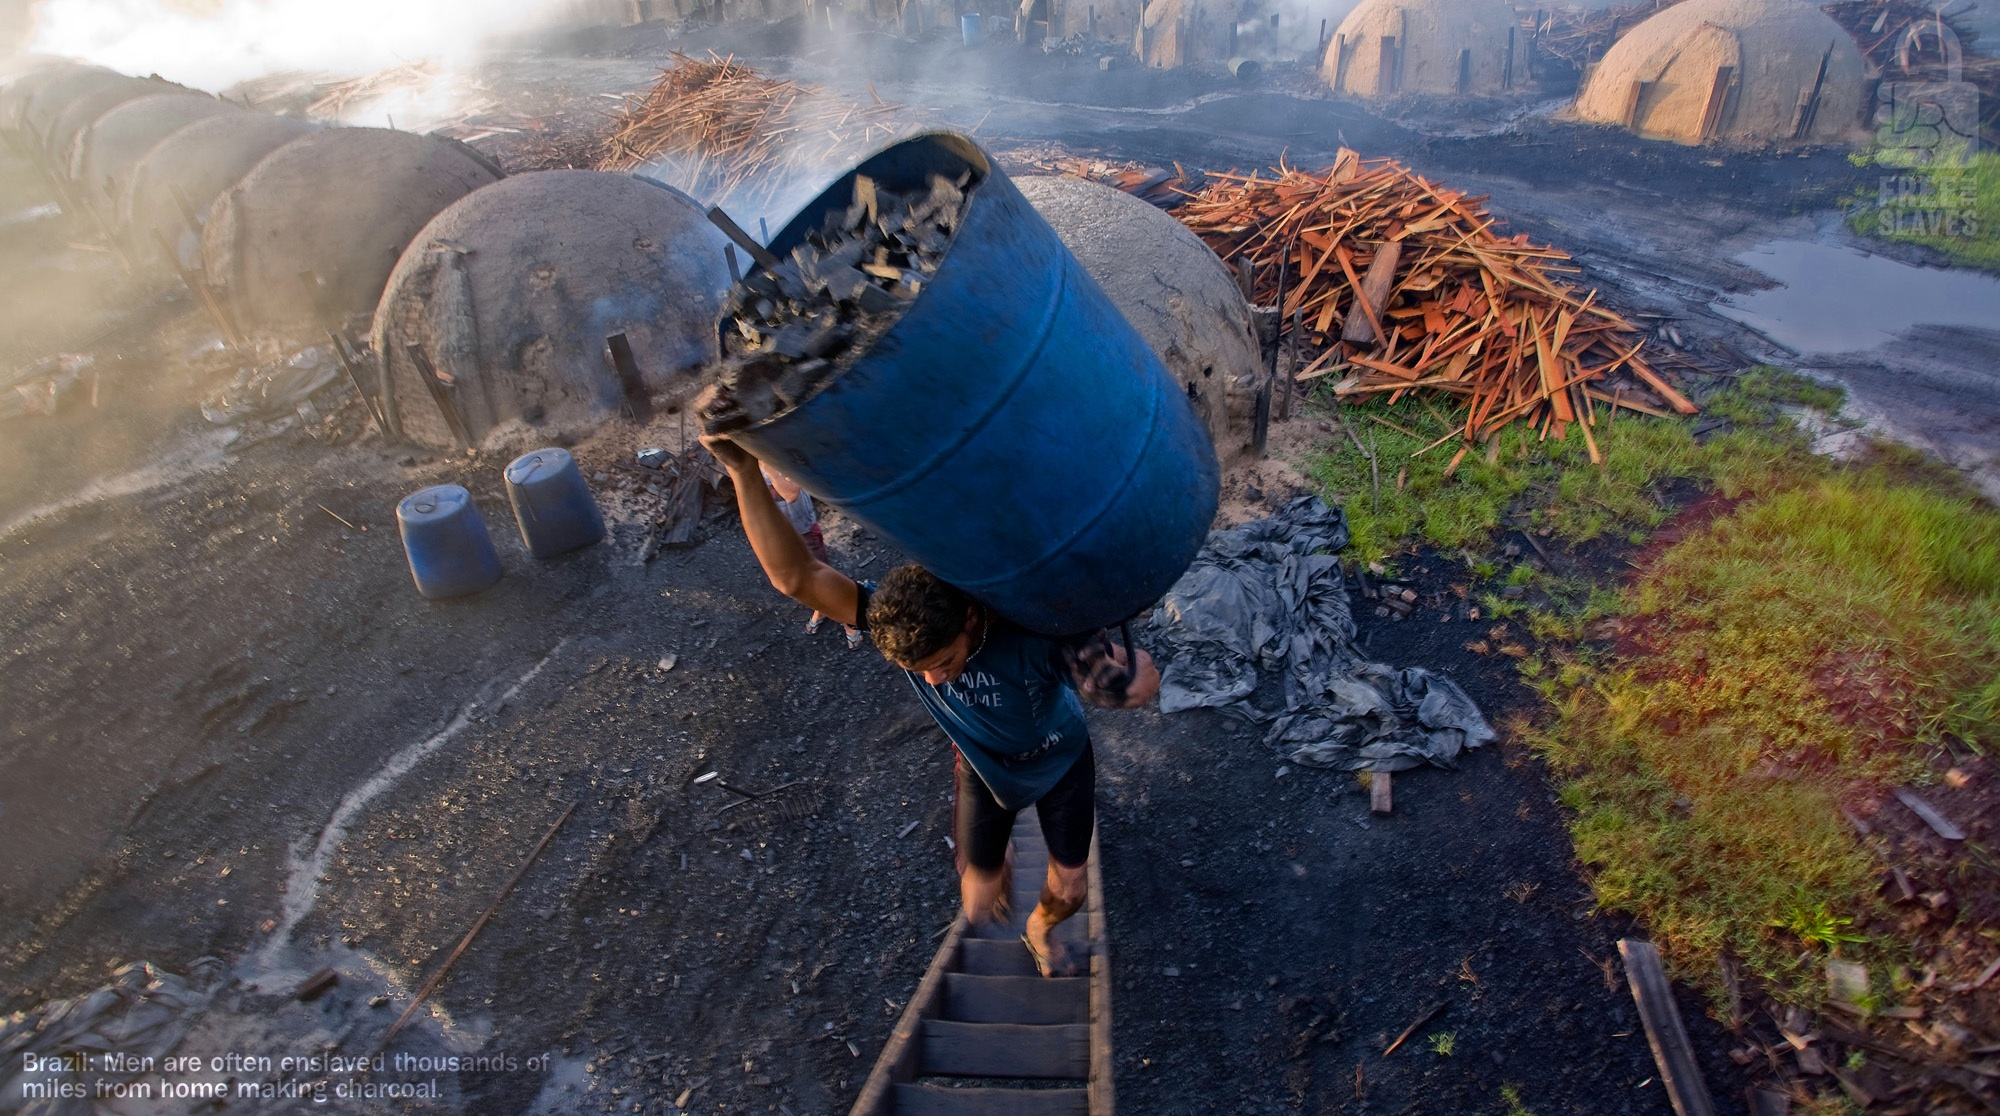 Men are enslaved thousands of miles away from home to make charcoal